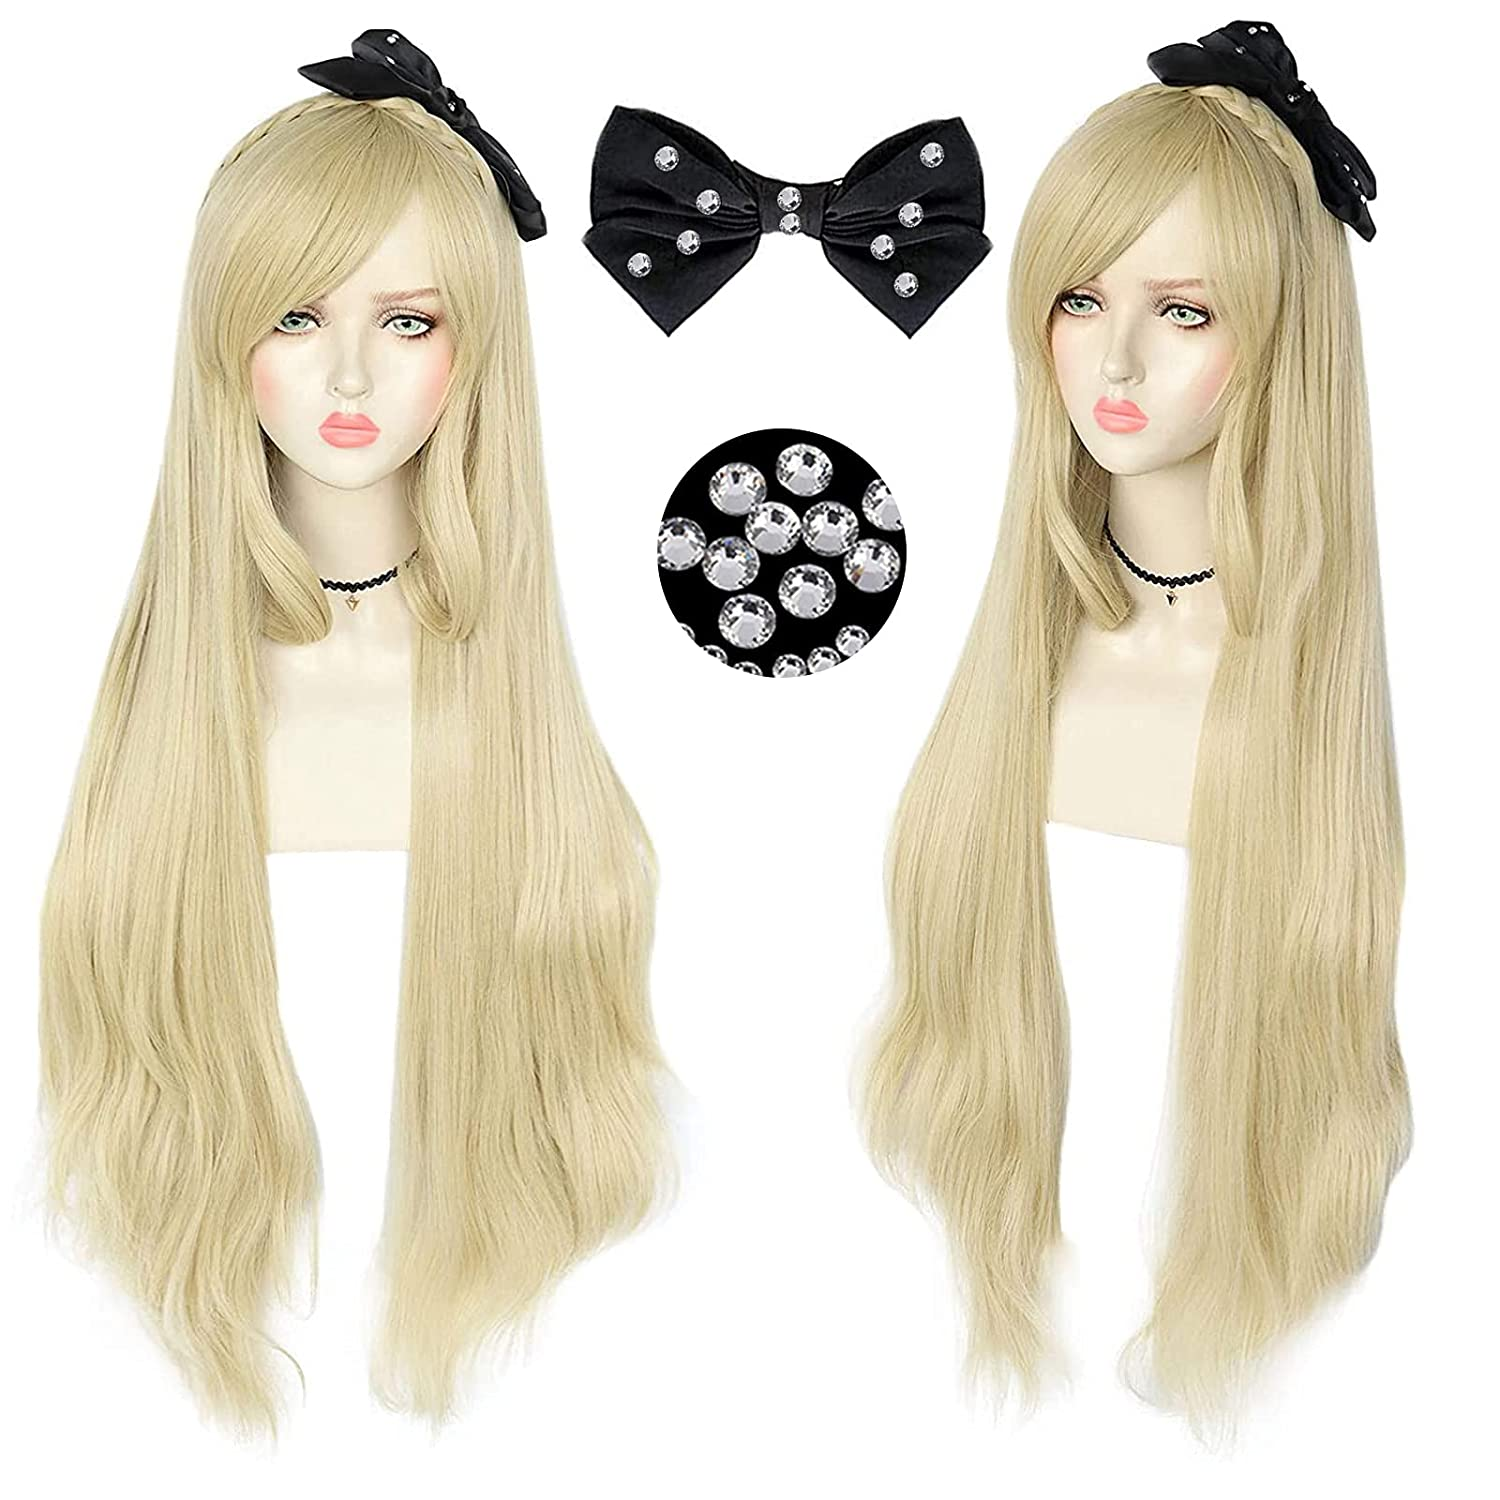 JoneTing Max 81% Fashion OFF Blonde Wig+{ Black bow} Cosplay Costume Long Synthetic